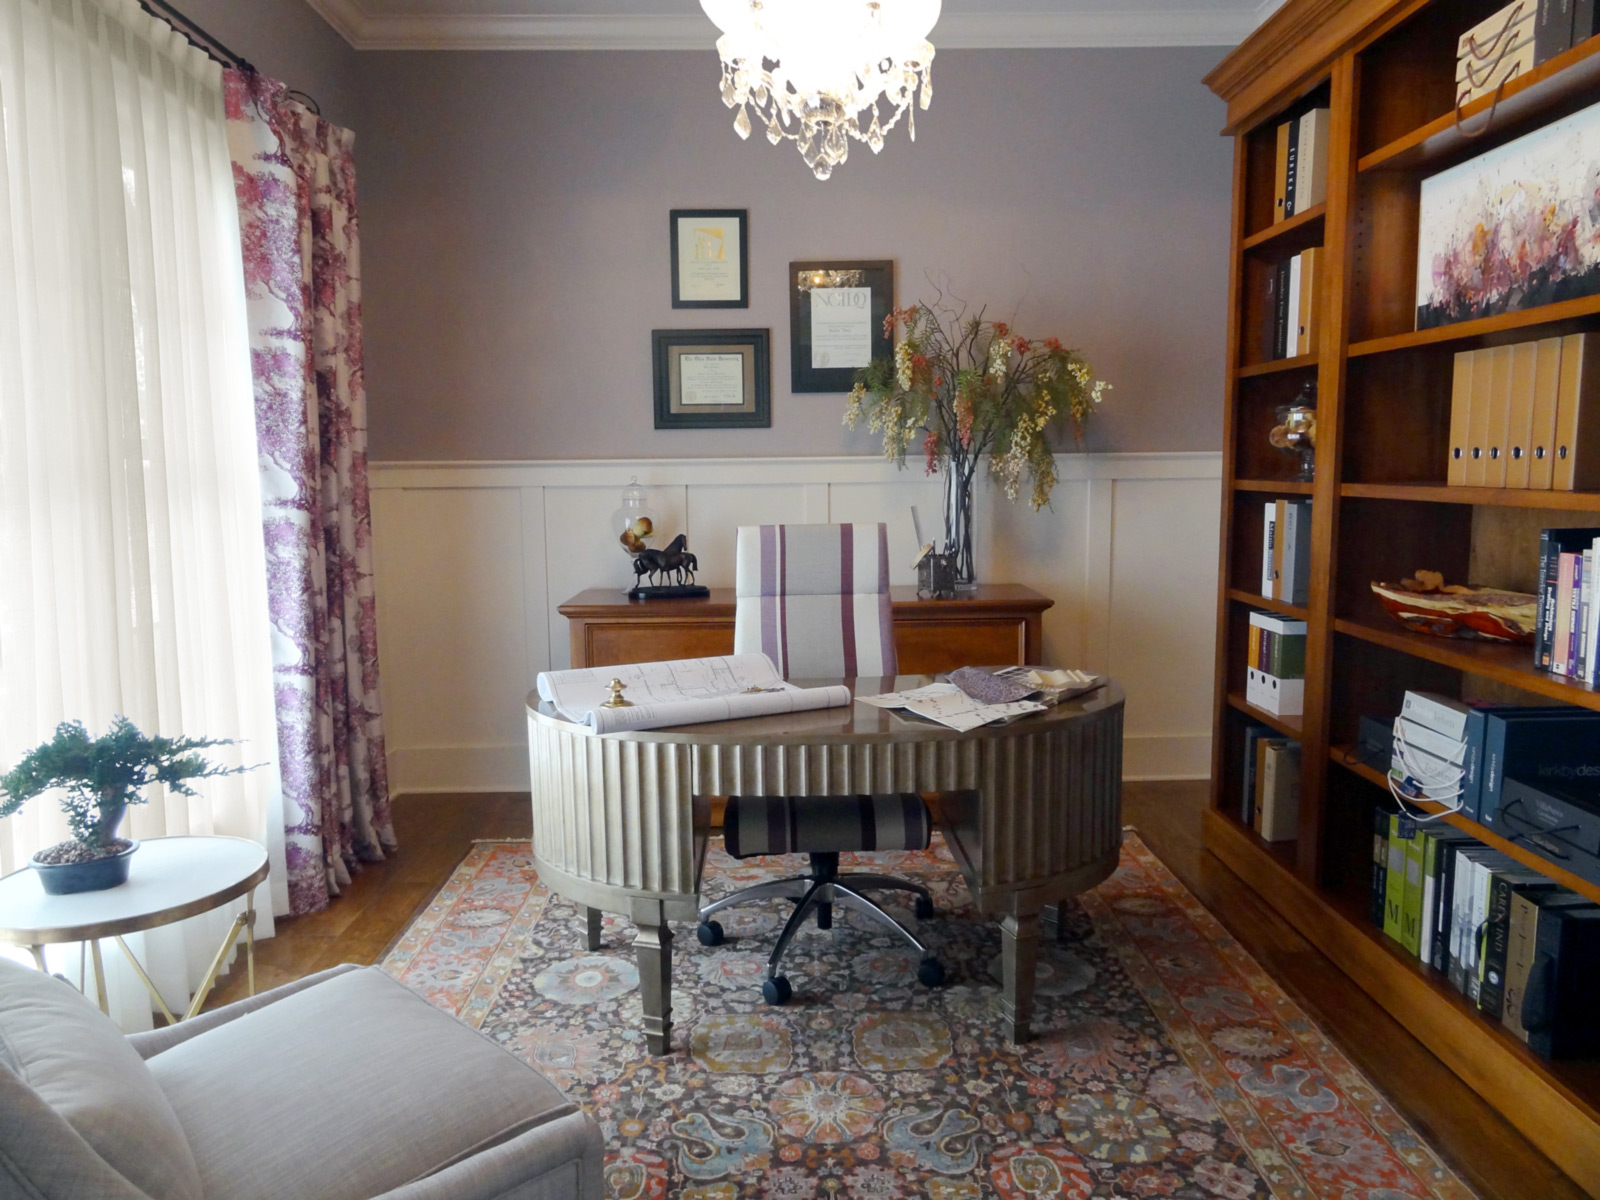 Stimulating Home Office Interior Designs. Home Office Designed For Work And  Panache